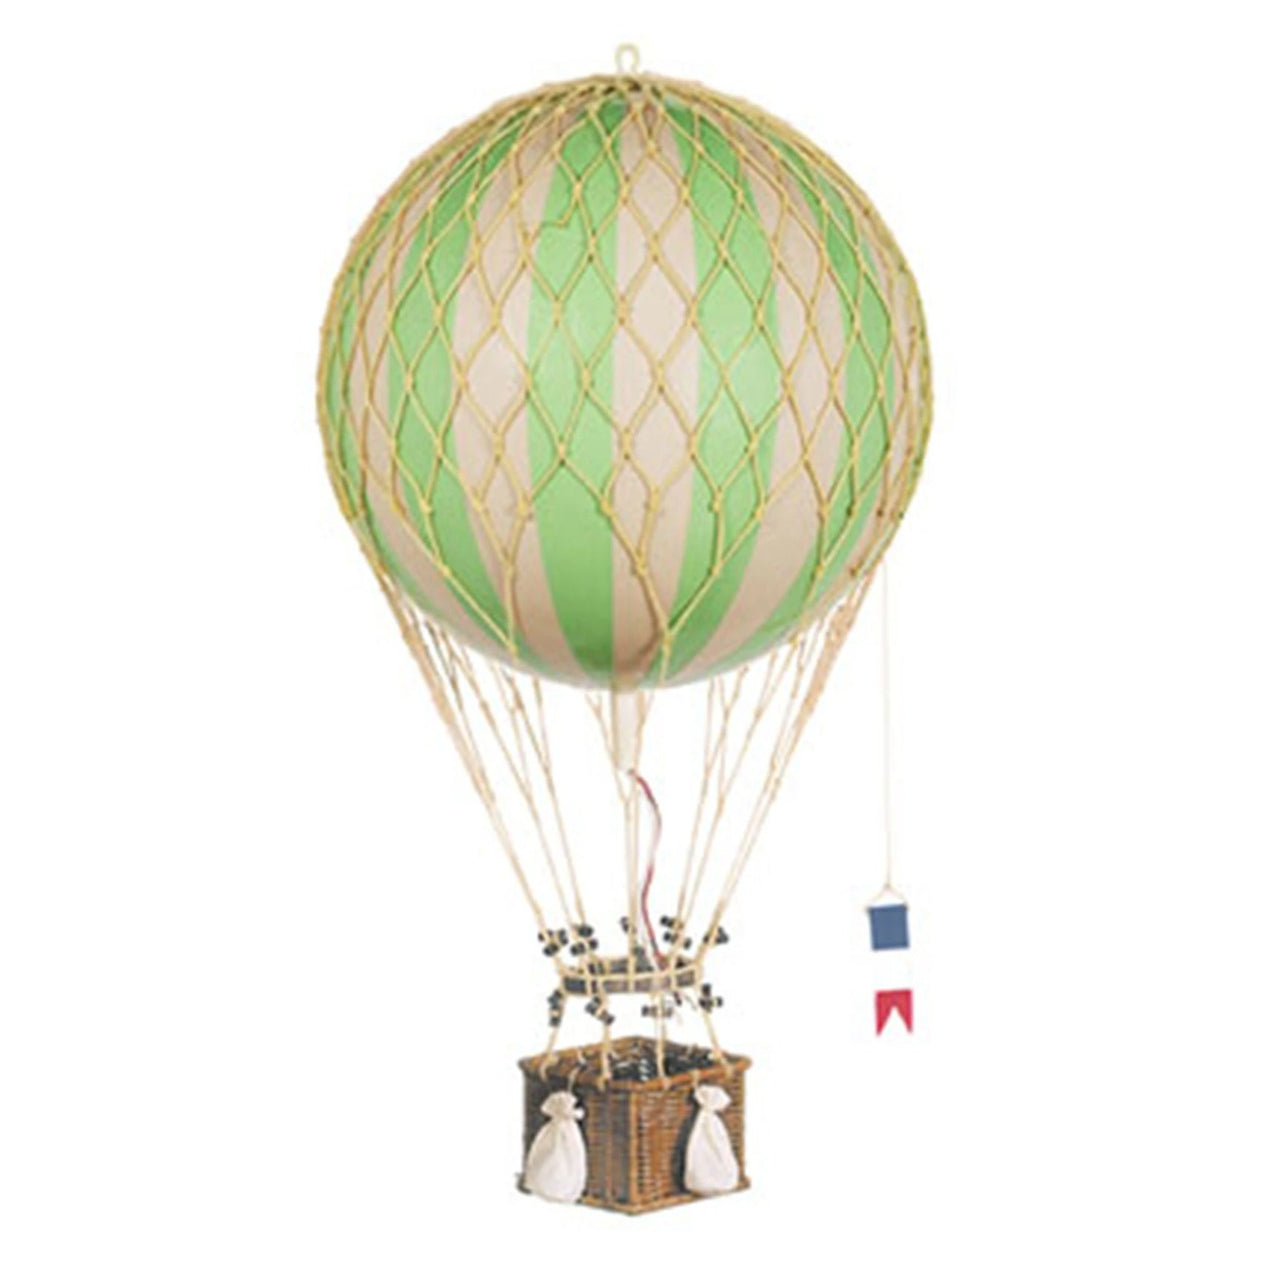 Large green hot air balloon which comes complete with a rattan basket hanging from hand-knotted netting.